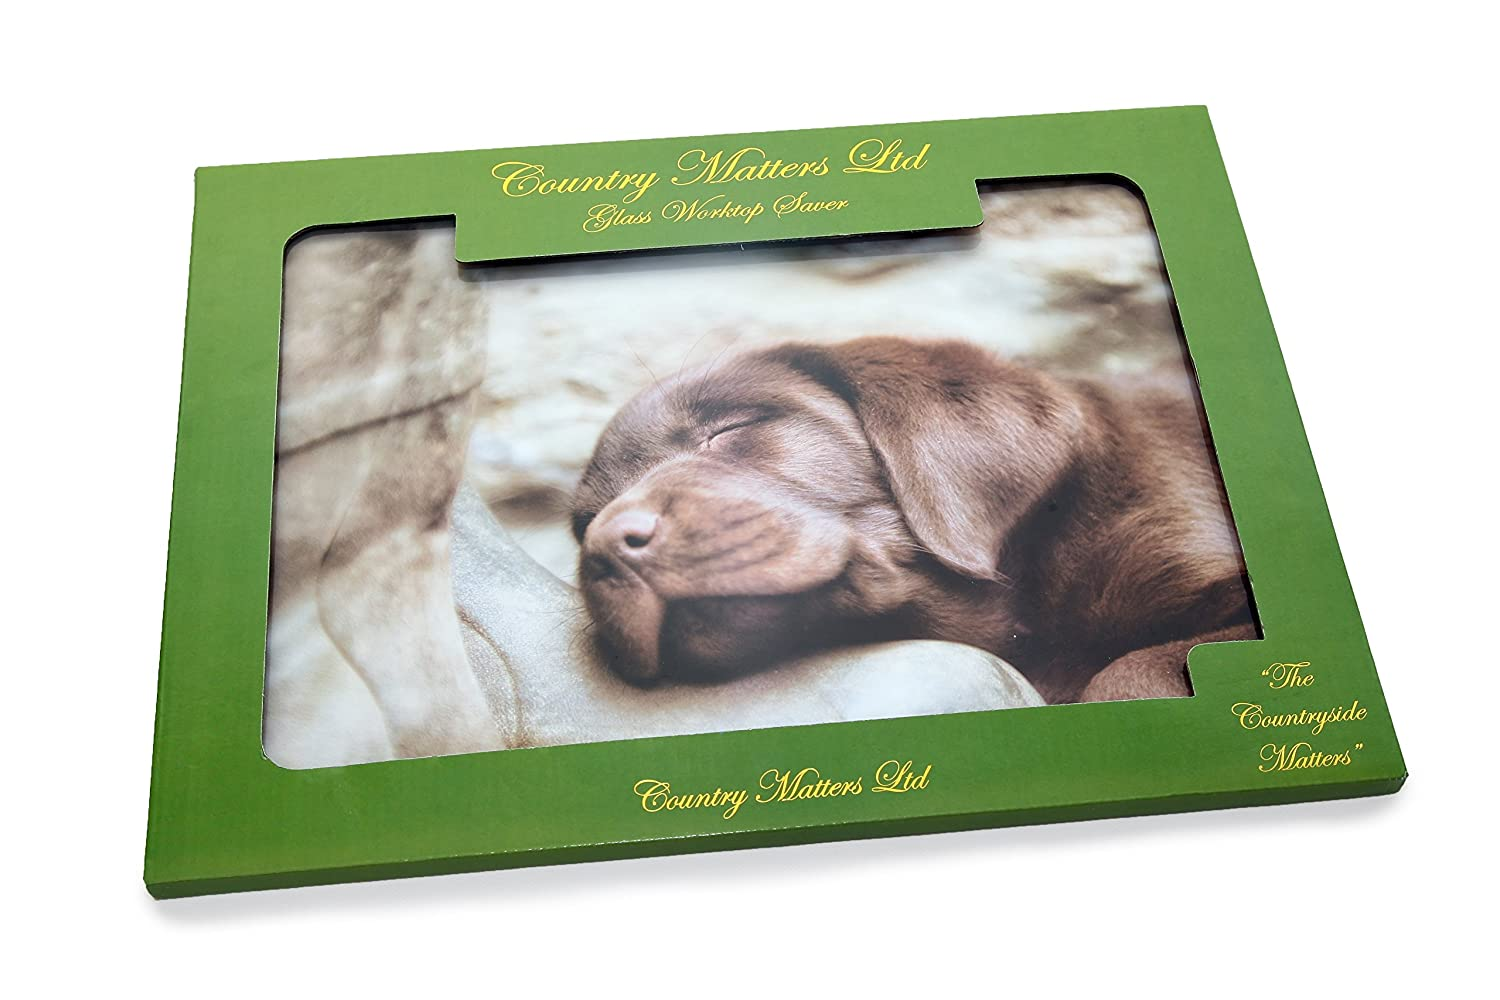 COUNTRY MATTERS Labrador Pup on Boot Glass Worktop Saver, Multi-Colour, 40 x 30 x 0.05 cm CMGWS0101